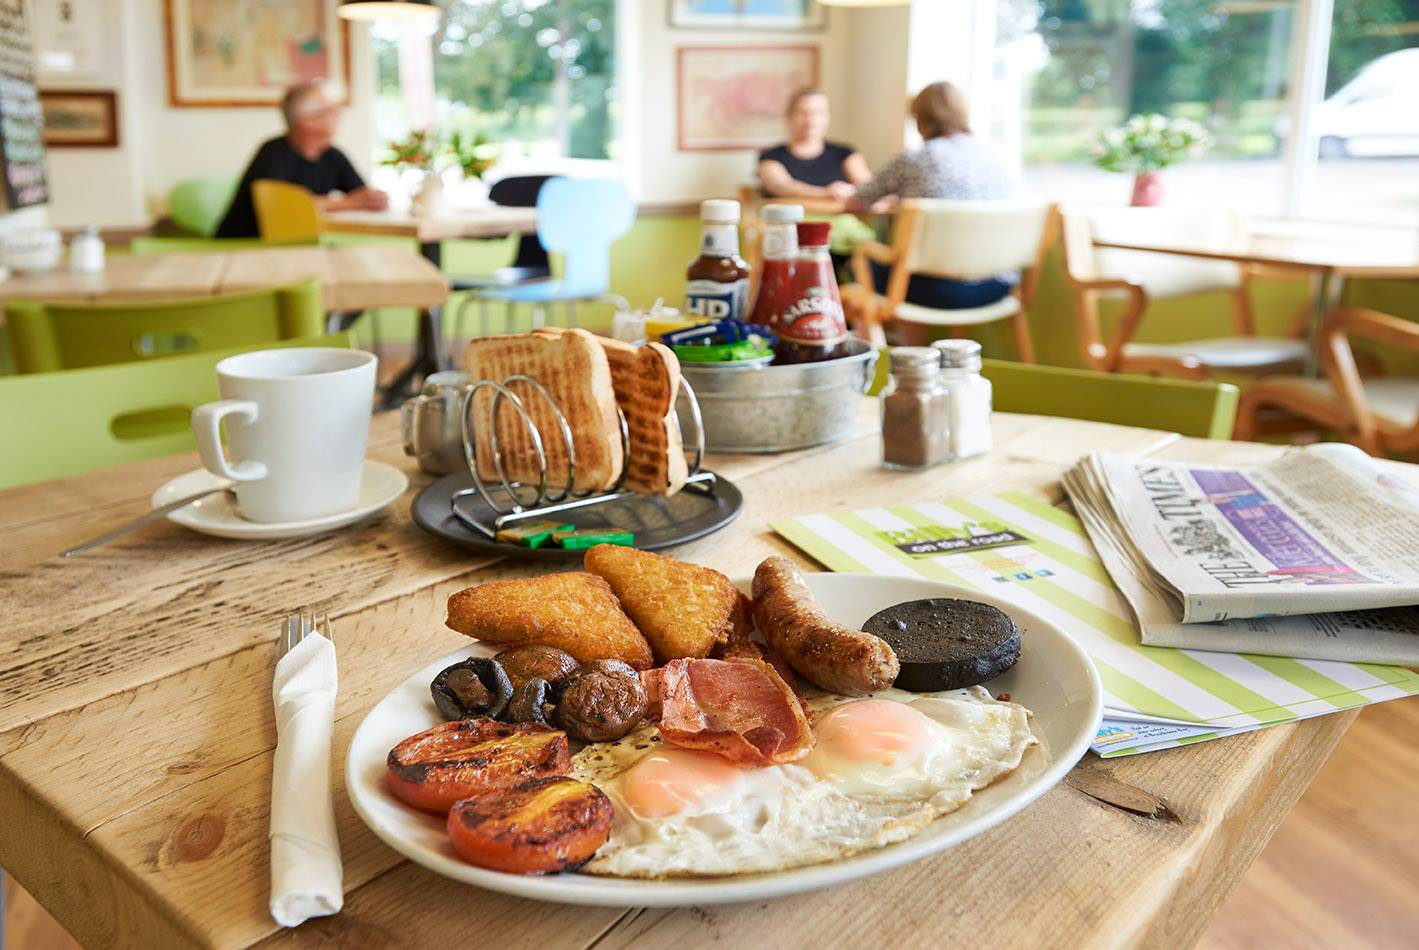 Billy's on the road English fry up on a table with newspaper and coffee